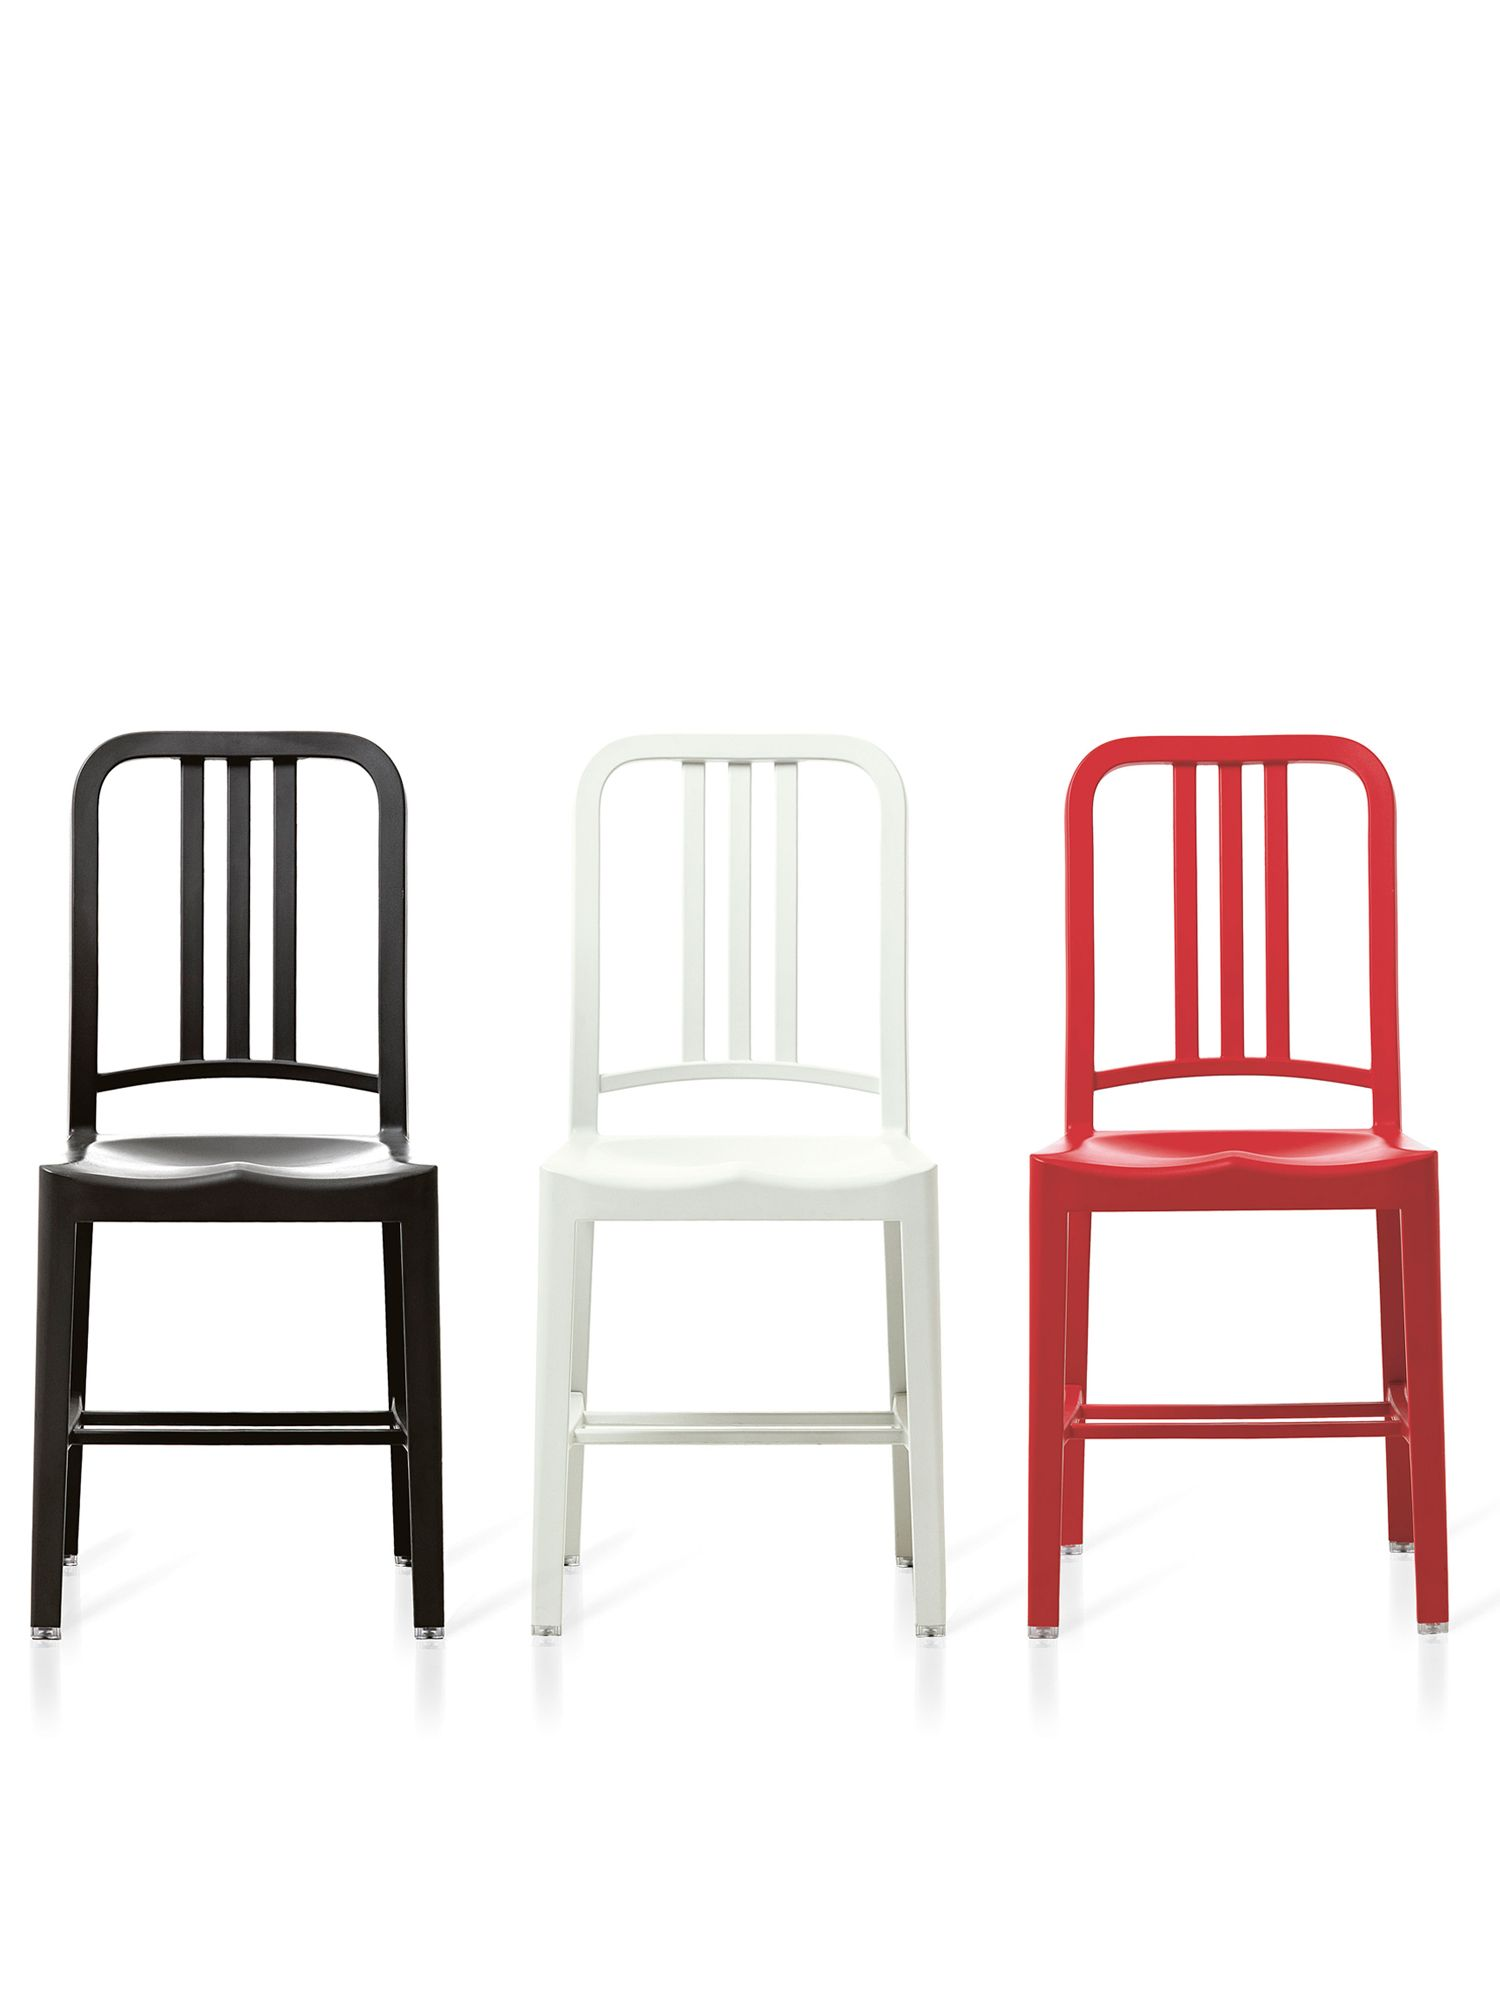 Emeco 111 Navy chairs, from Space Furniture